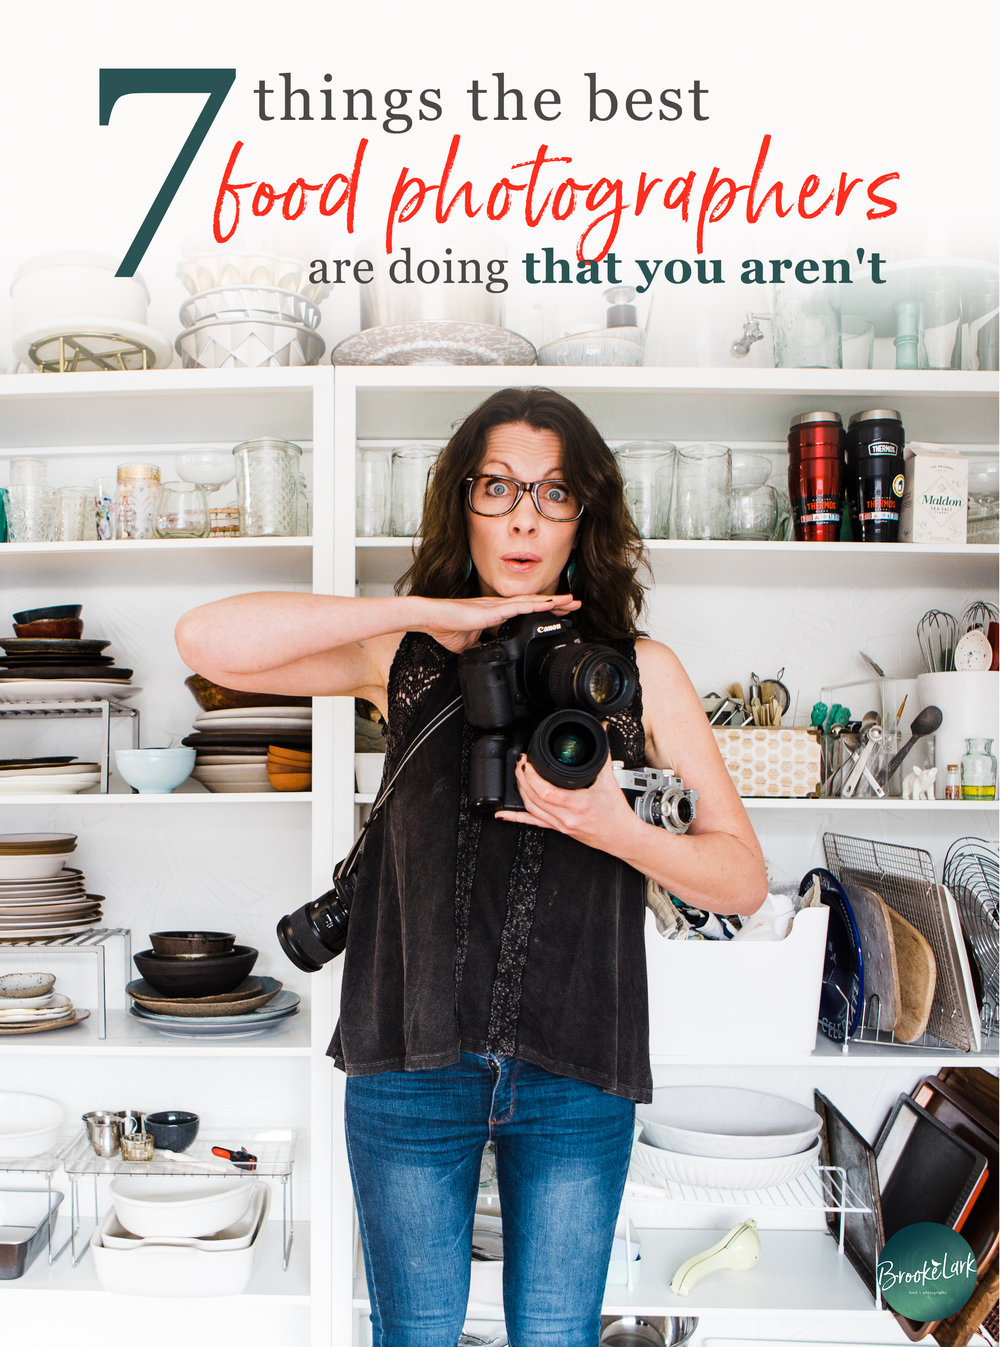 7 Things The Best Food Photographers Are Doing That You Aren't | Colors, shapes, texture – a food photographer strives to capture the pure essence of food. Our goal is to make you want to reach right in and grab a bite. Hungry yet? Okay, our job is done.